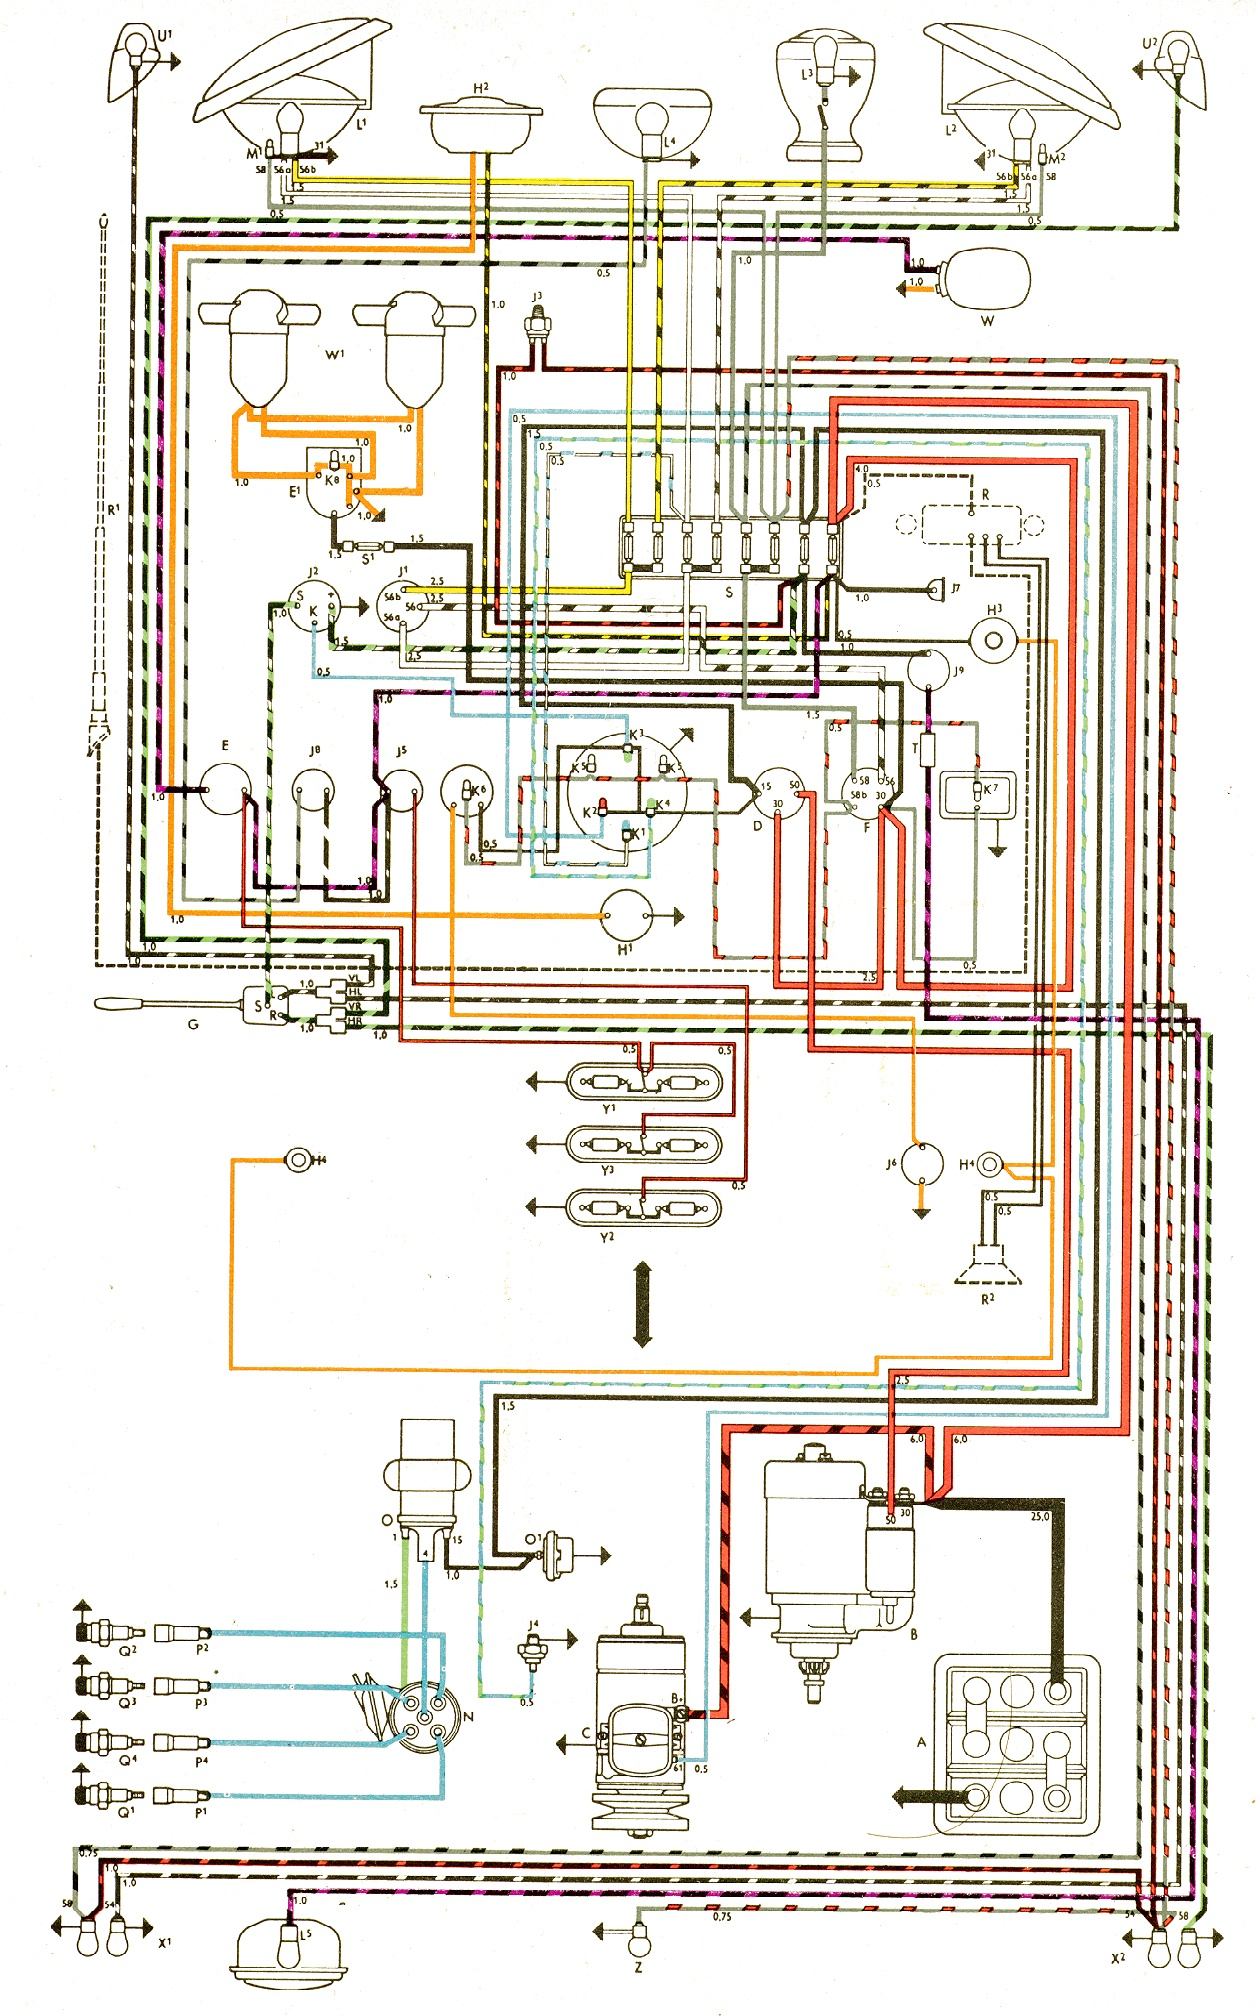 hight resolution of vintagebus com vw bus and other wiring diagrams 1978 vw bus wiring diagram